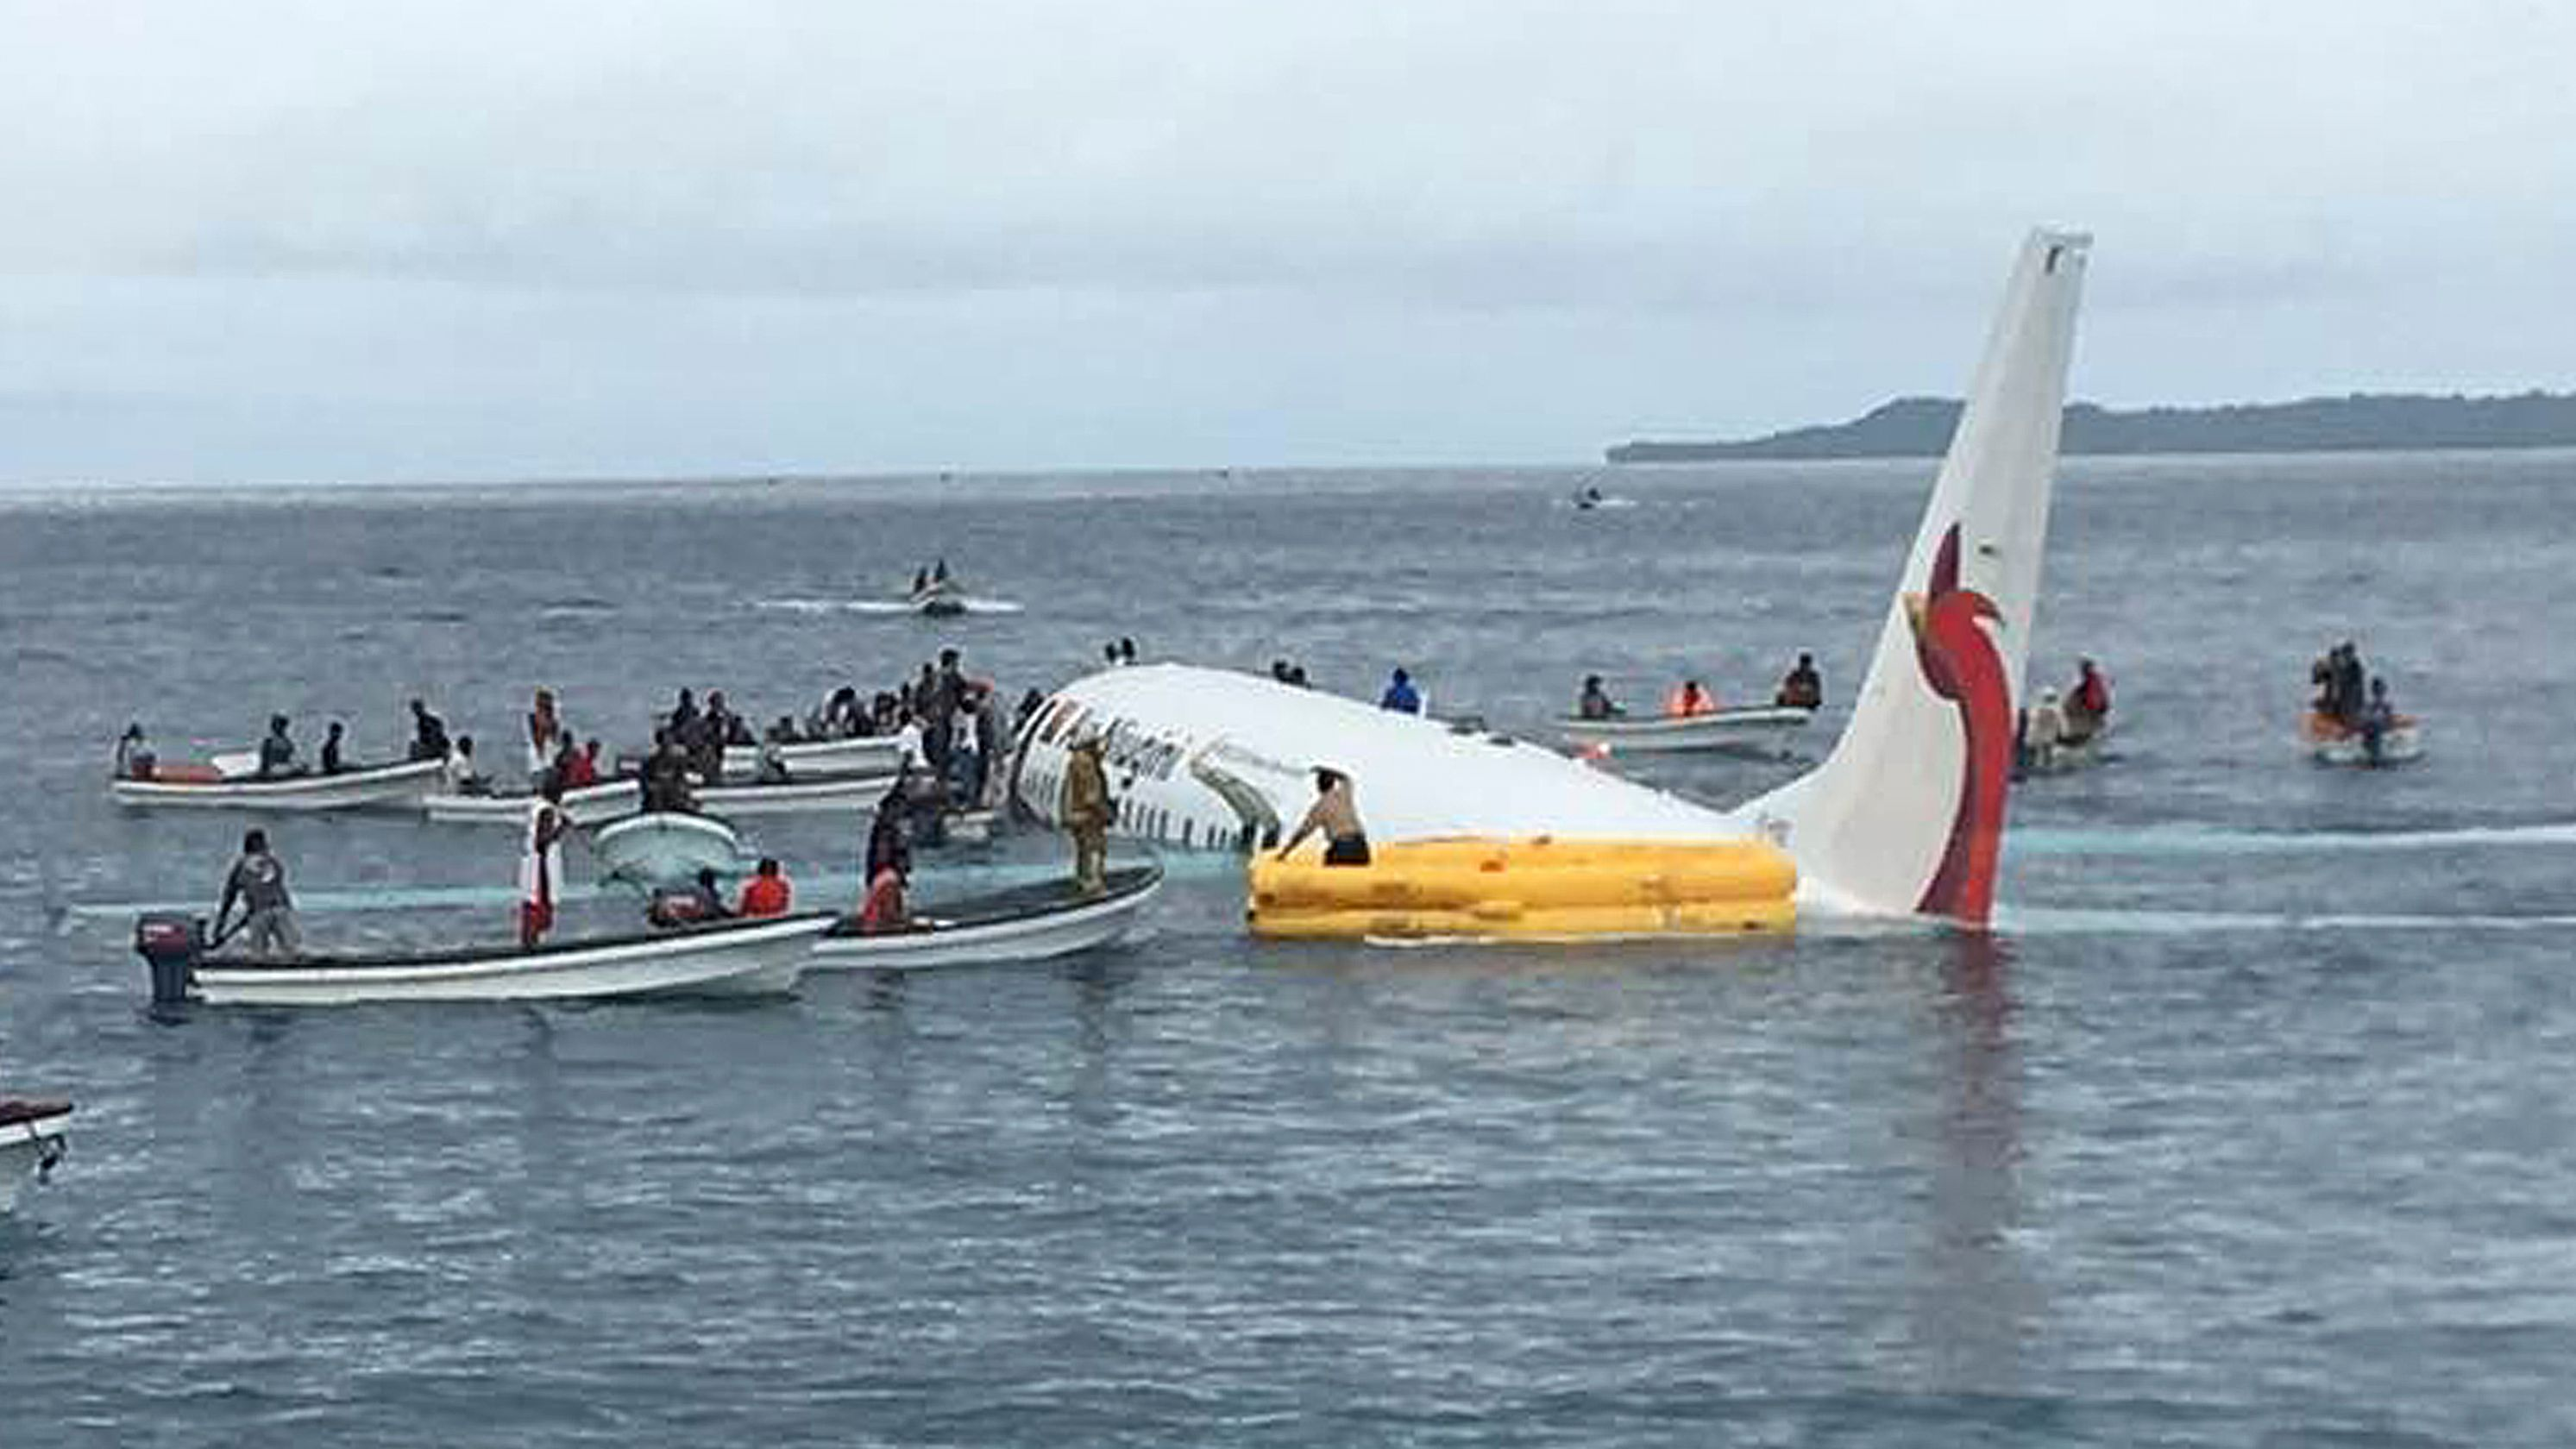 Plane crash in the ocean.